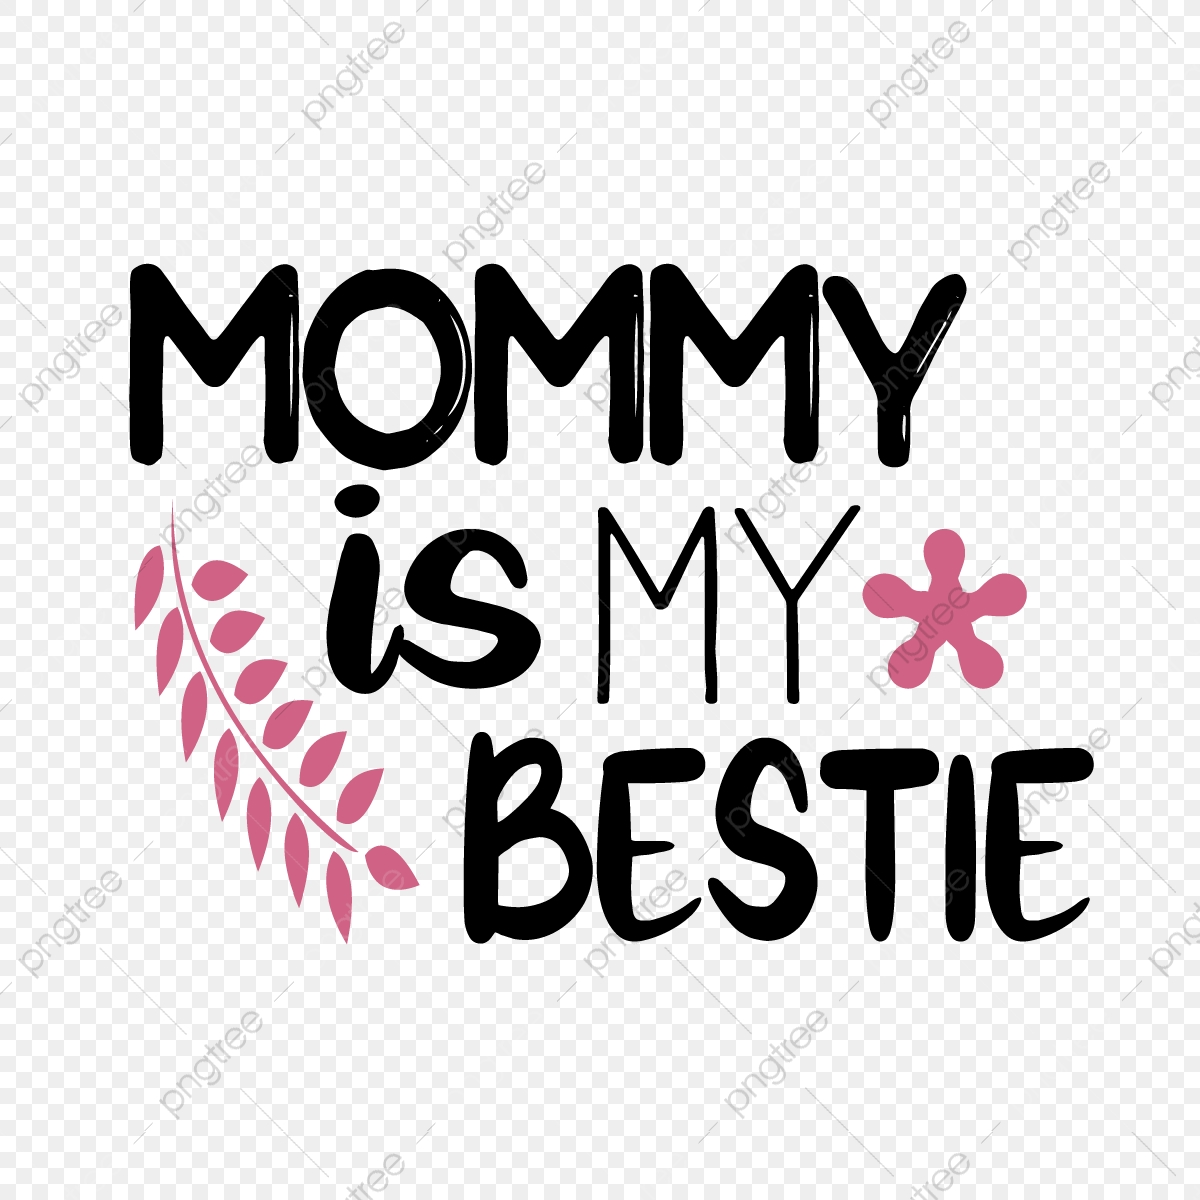 Svg Cartoon Black Hand Drawn Illustration Mom Is My Baby English Alphabet Font Effect Eps For Free Download